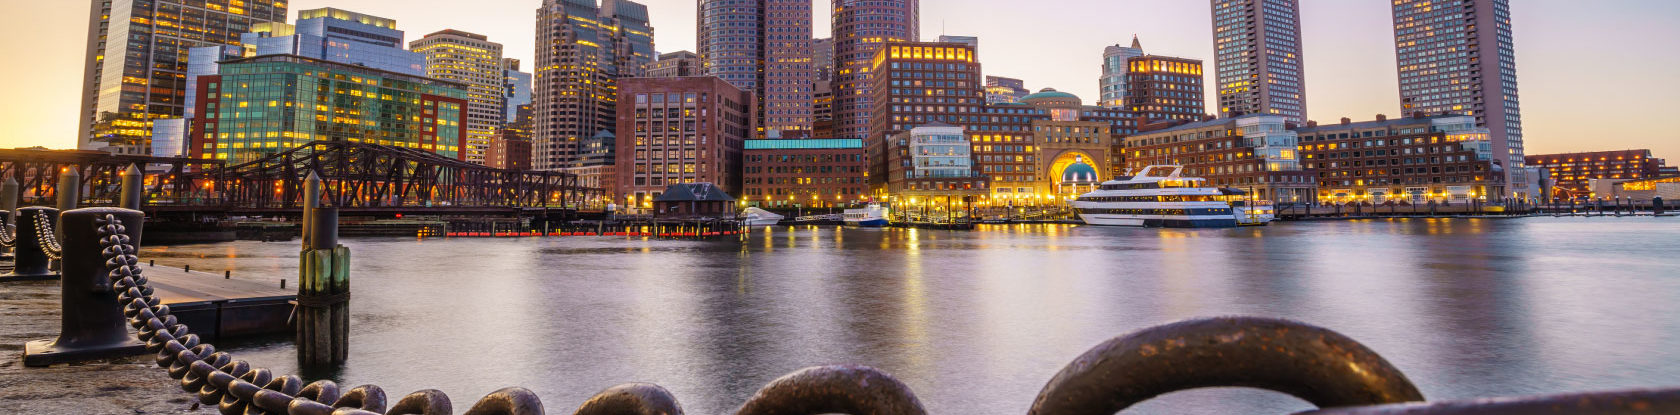 Boston Business Consulting Services - IT Consulting Boston